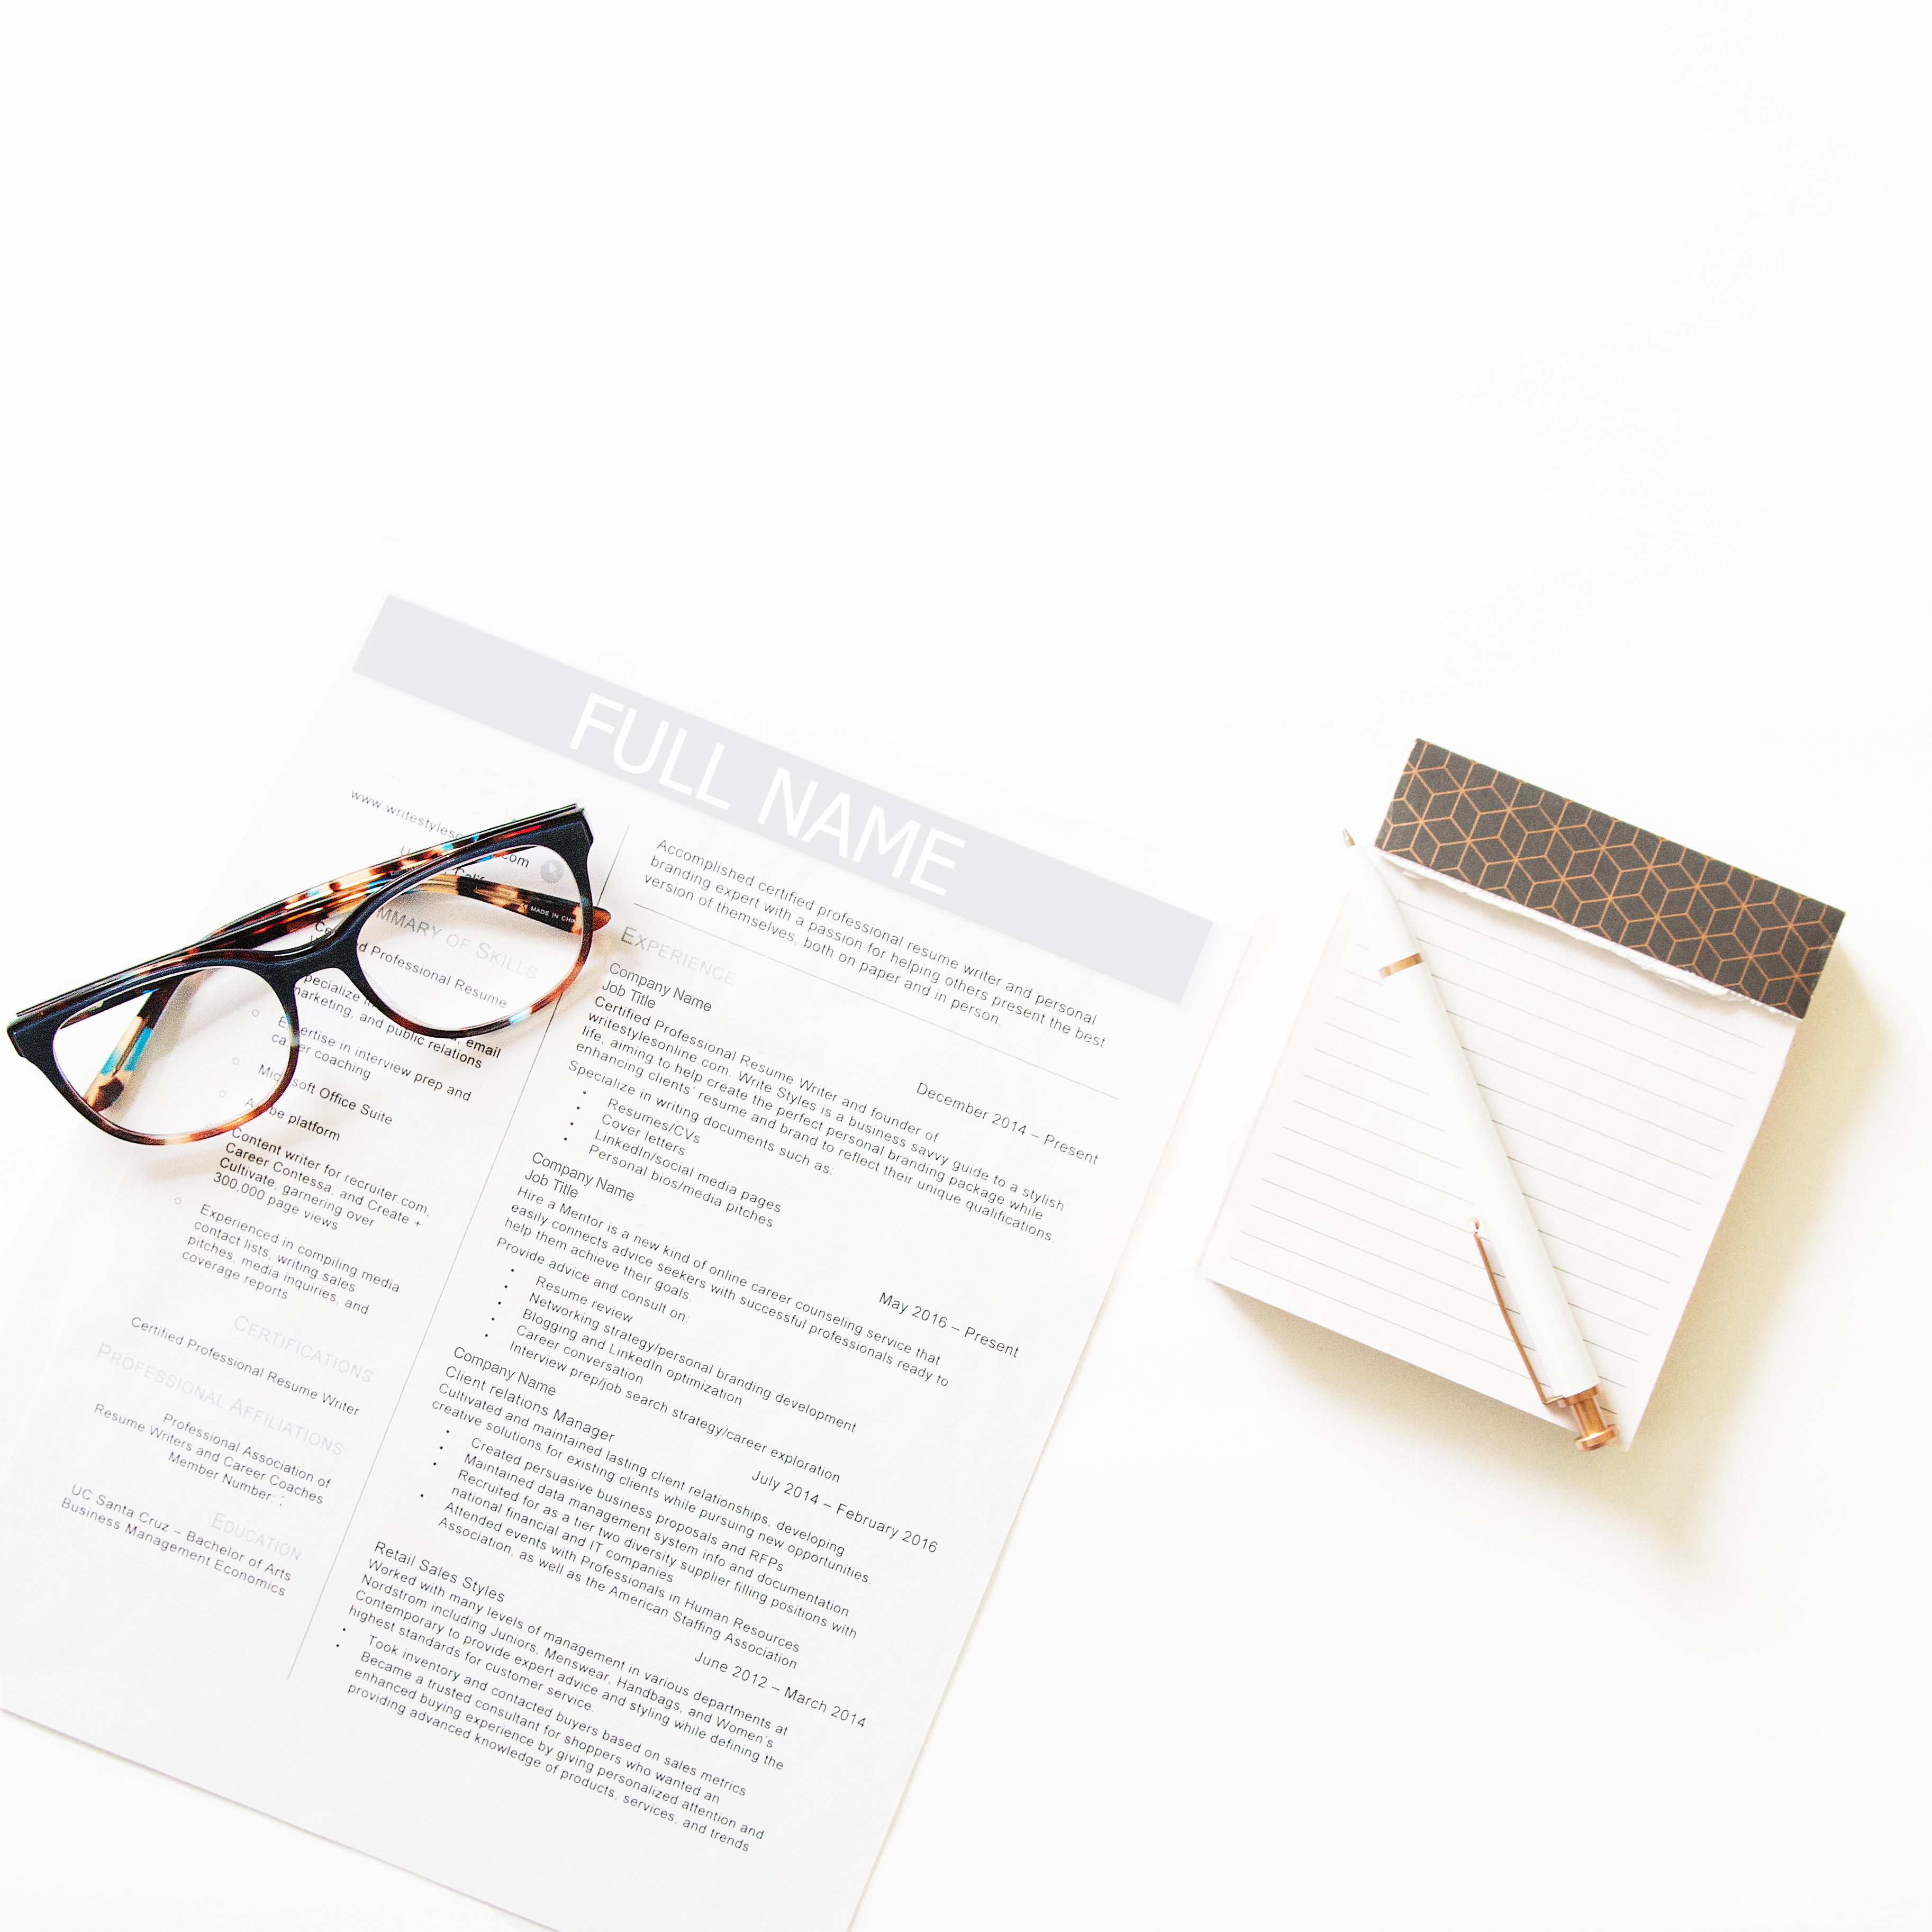 How Long Should A Resume Be? - Write Styles